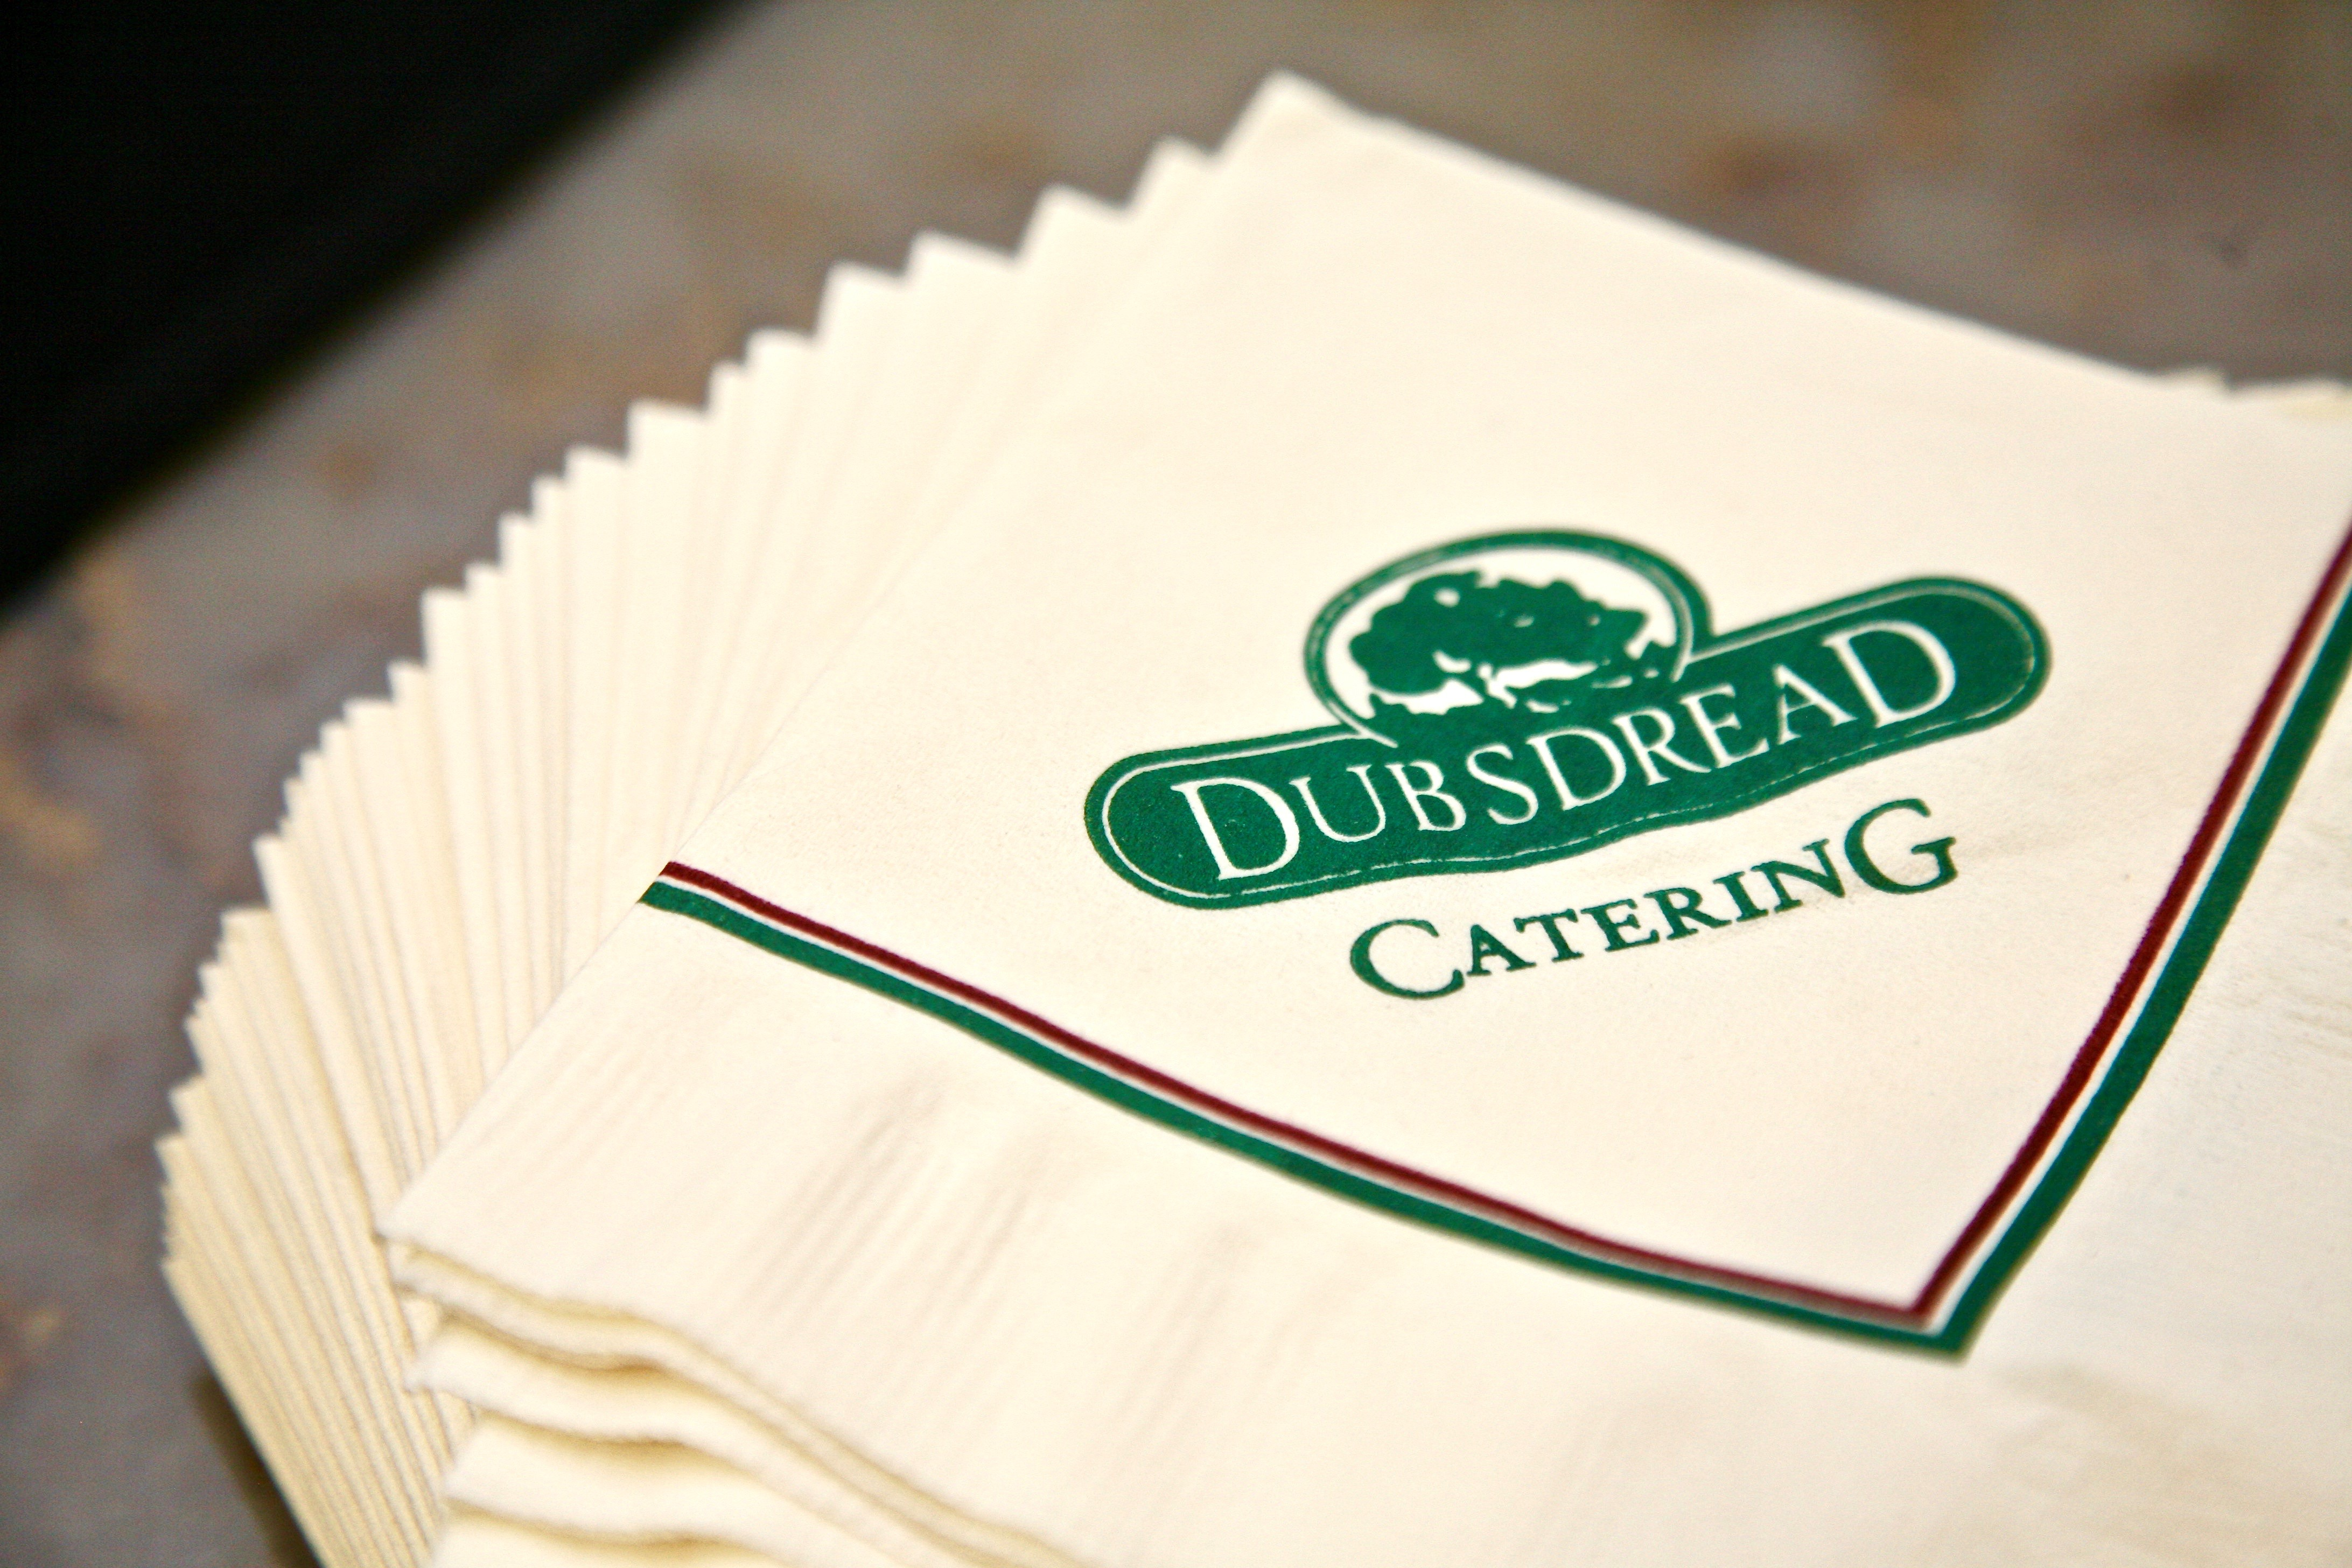 dubsdread catering napkins